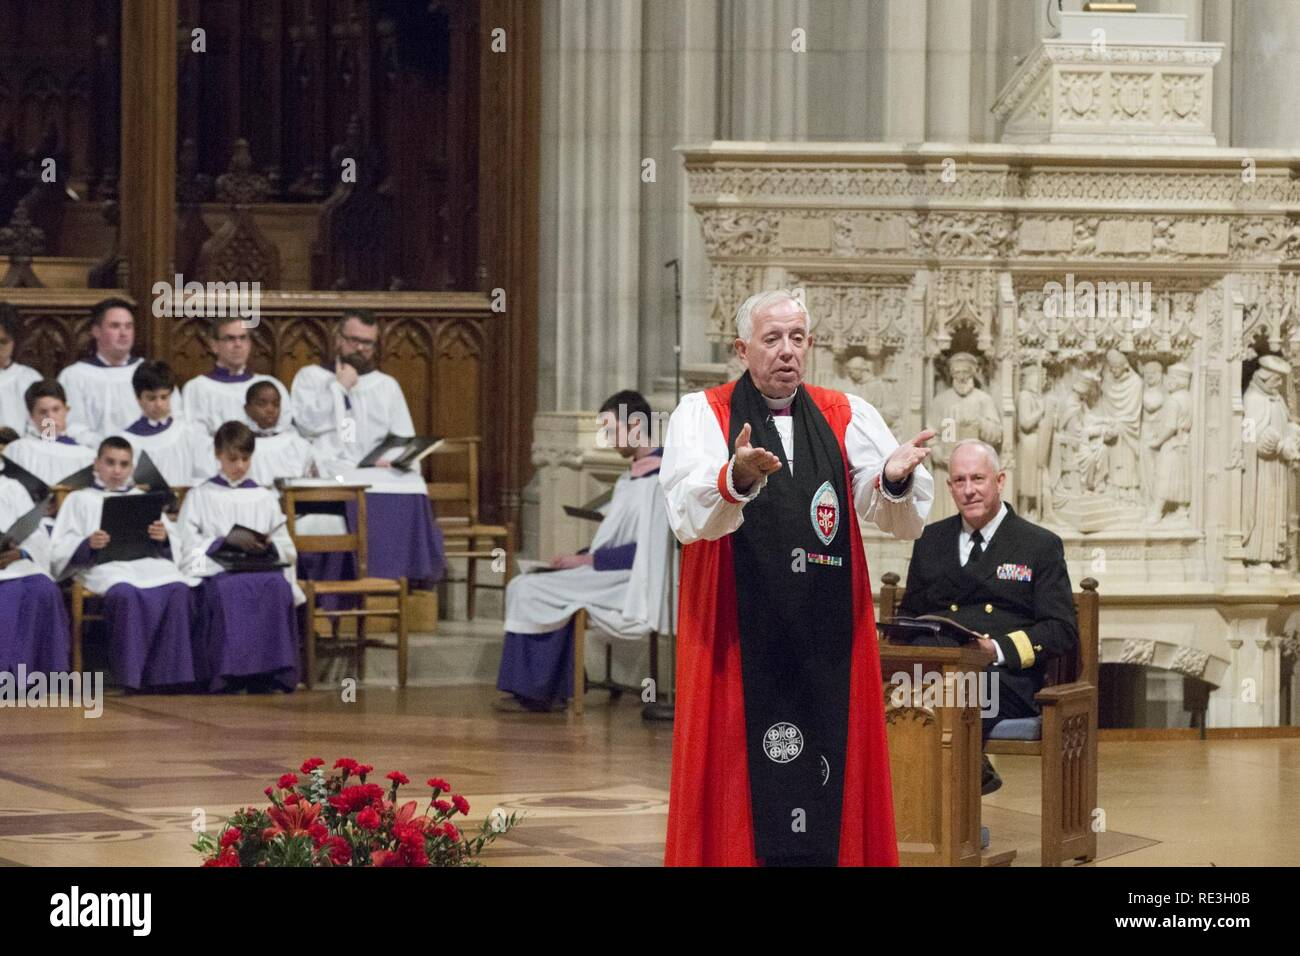 Reverend James B. Magness, bishop suffragan for Armed Services and Federal Ministries, welcomes guests to the Marine Corps Worship Service at the Washington National Cathedral, Washington, D.C., Nov. 13, 2016. The worship service honored the 241st anniversary of the Marine Corps. - Stock Image